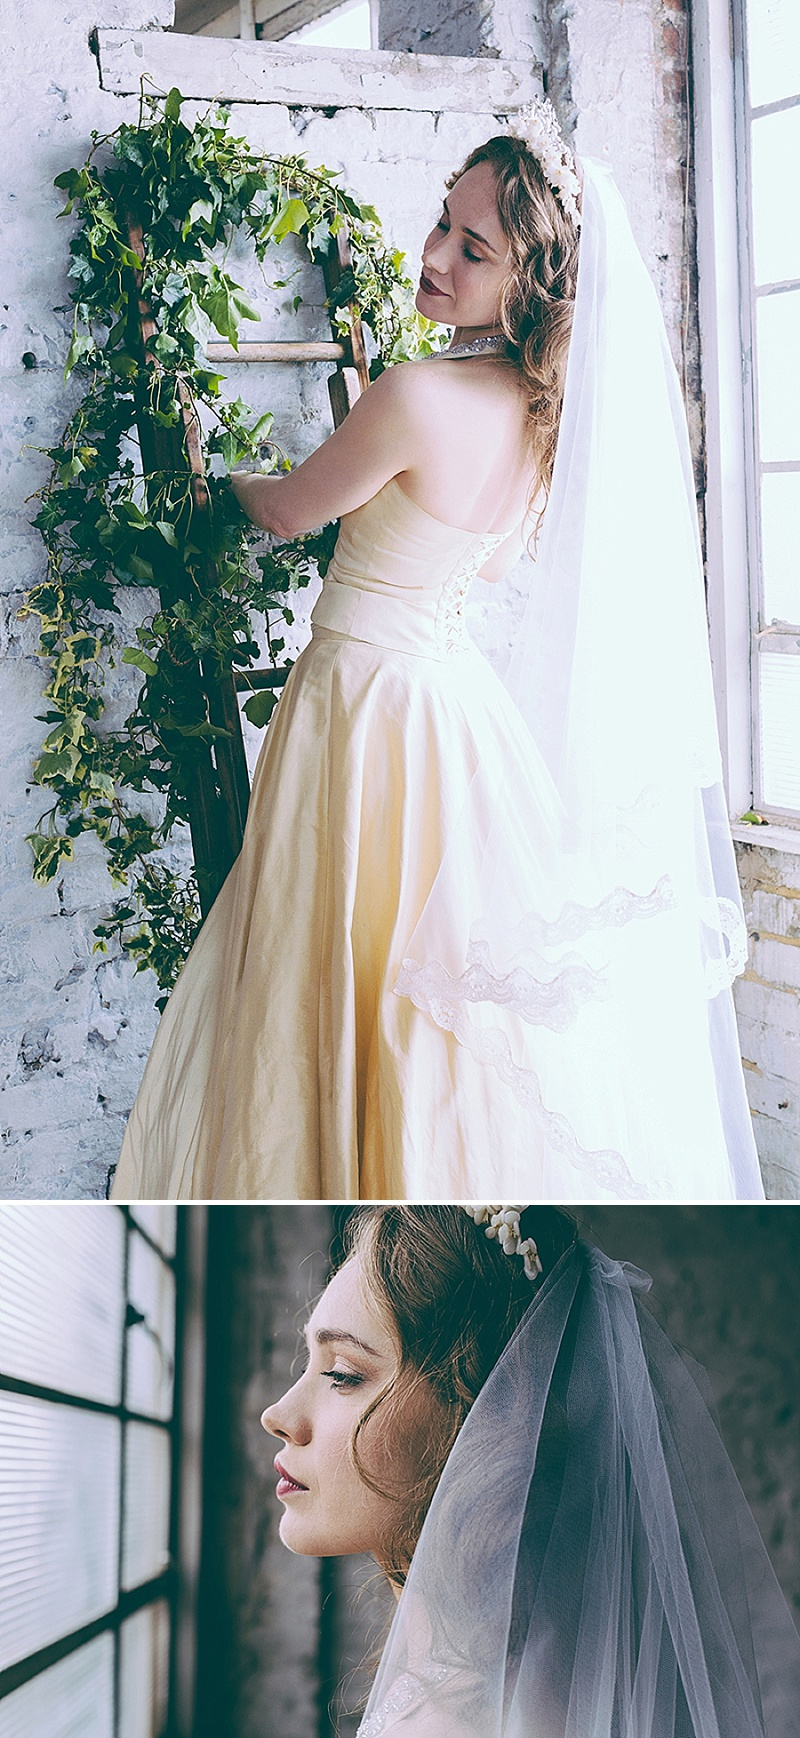 Rustic And Romantic Fairytale Bridal Inspiration Shoot With Gowns From Faith Caton-Barber And Accessories From Rosie Weisencrantz With Images By Miss Gen Photography 2